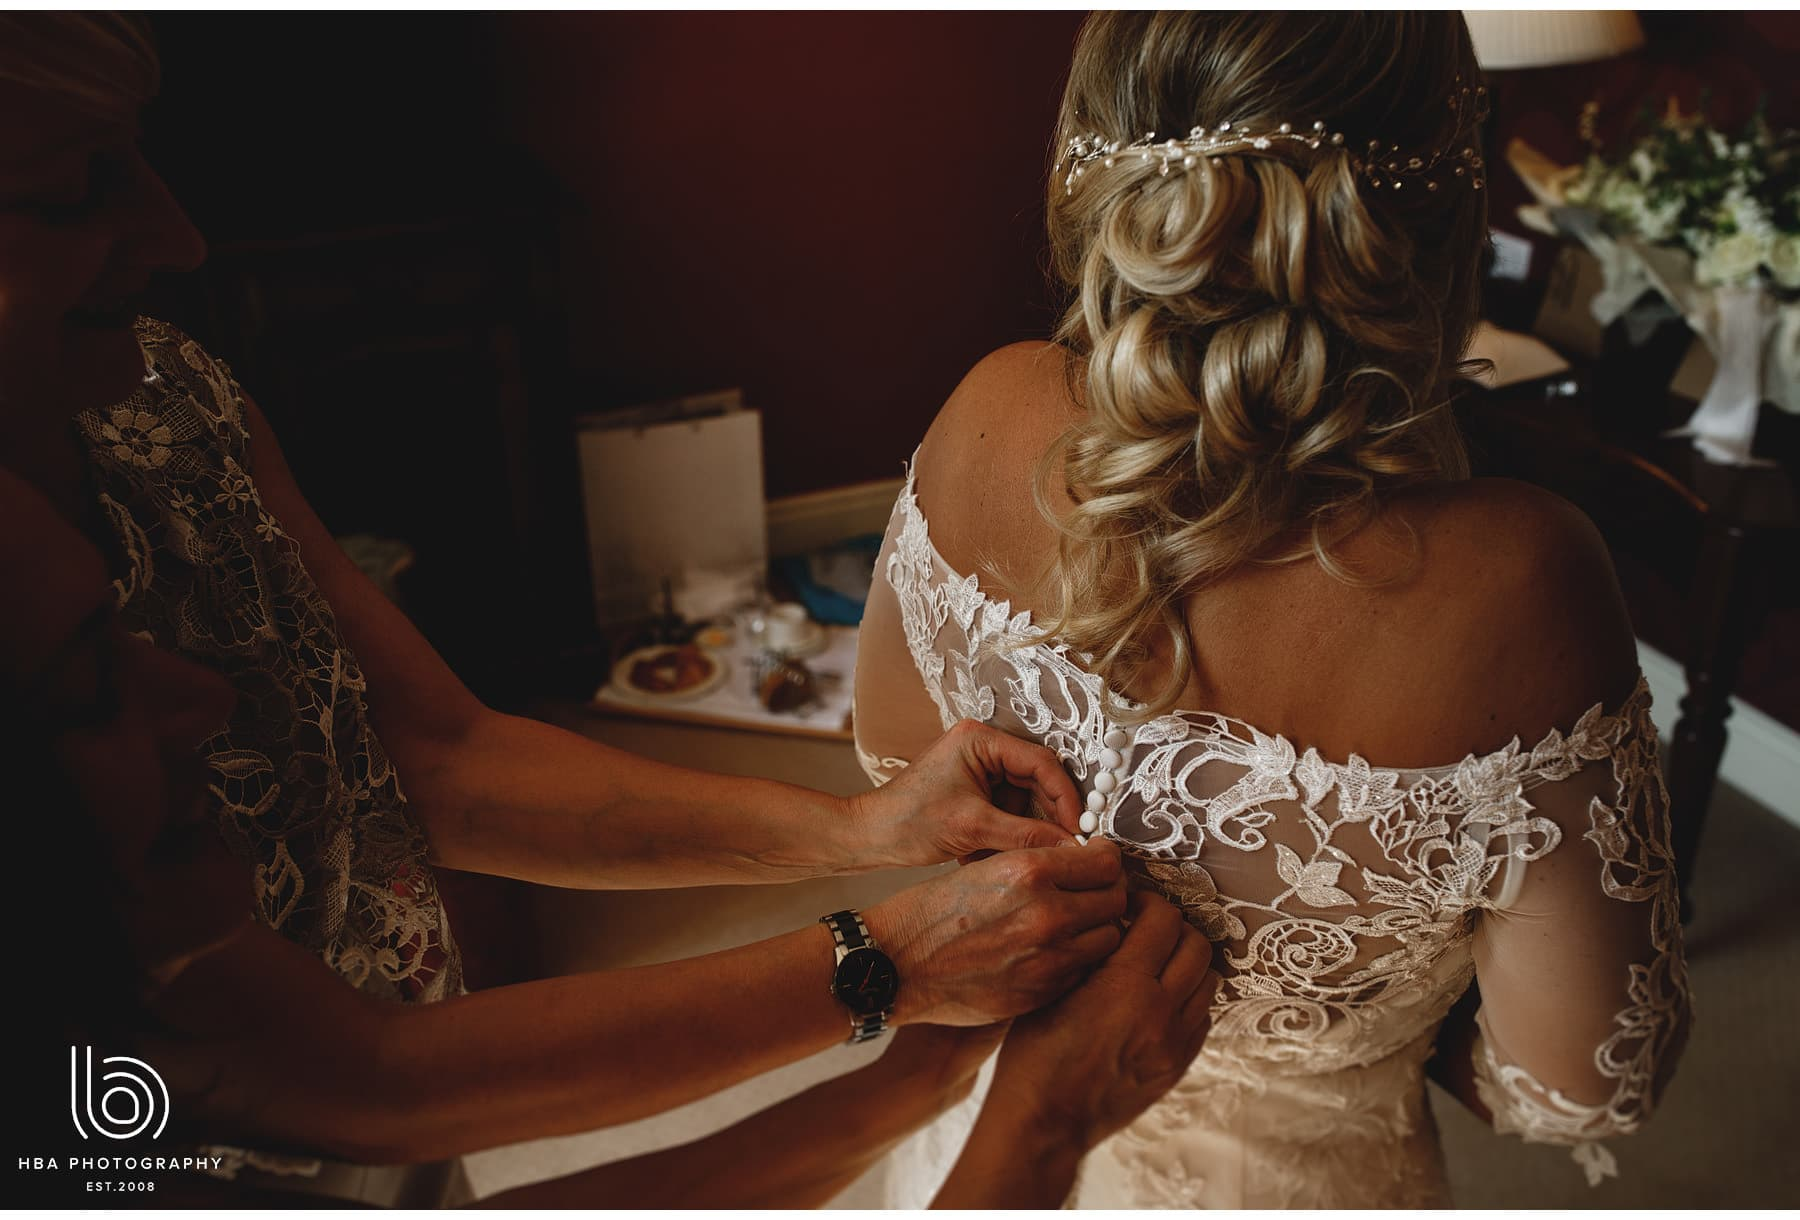 the bride in the dress